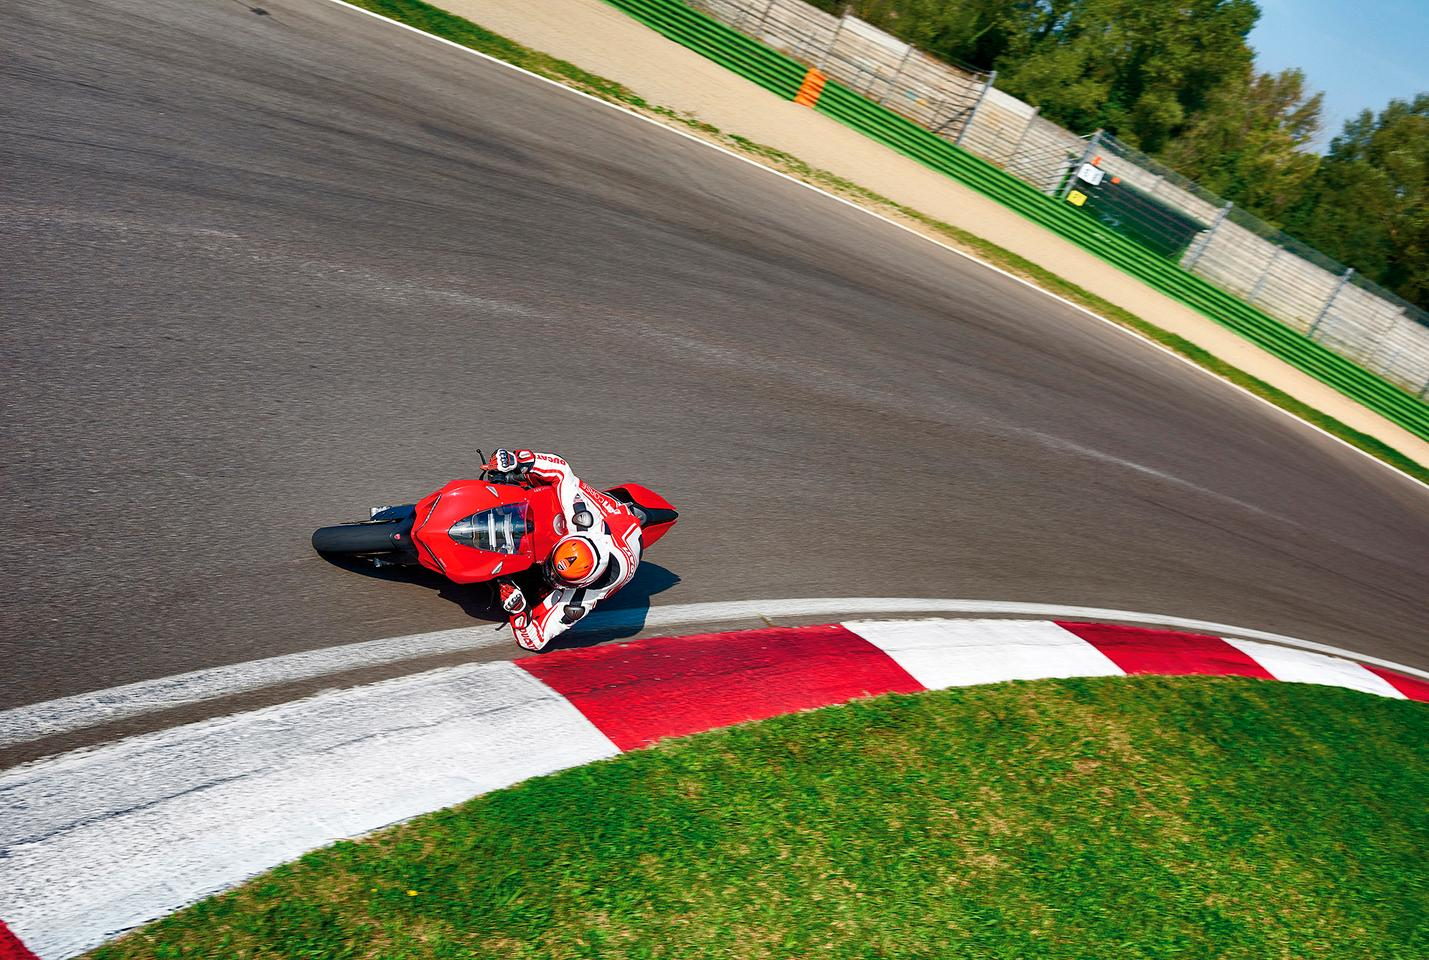 Ducati Panigale 1299 - in action on the racetrack